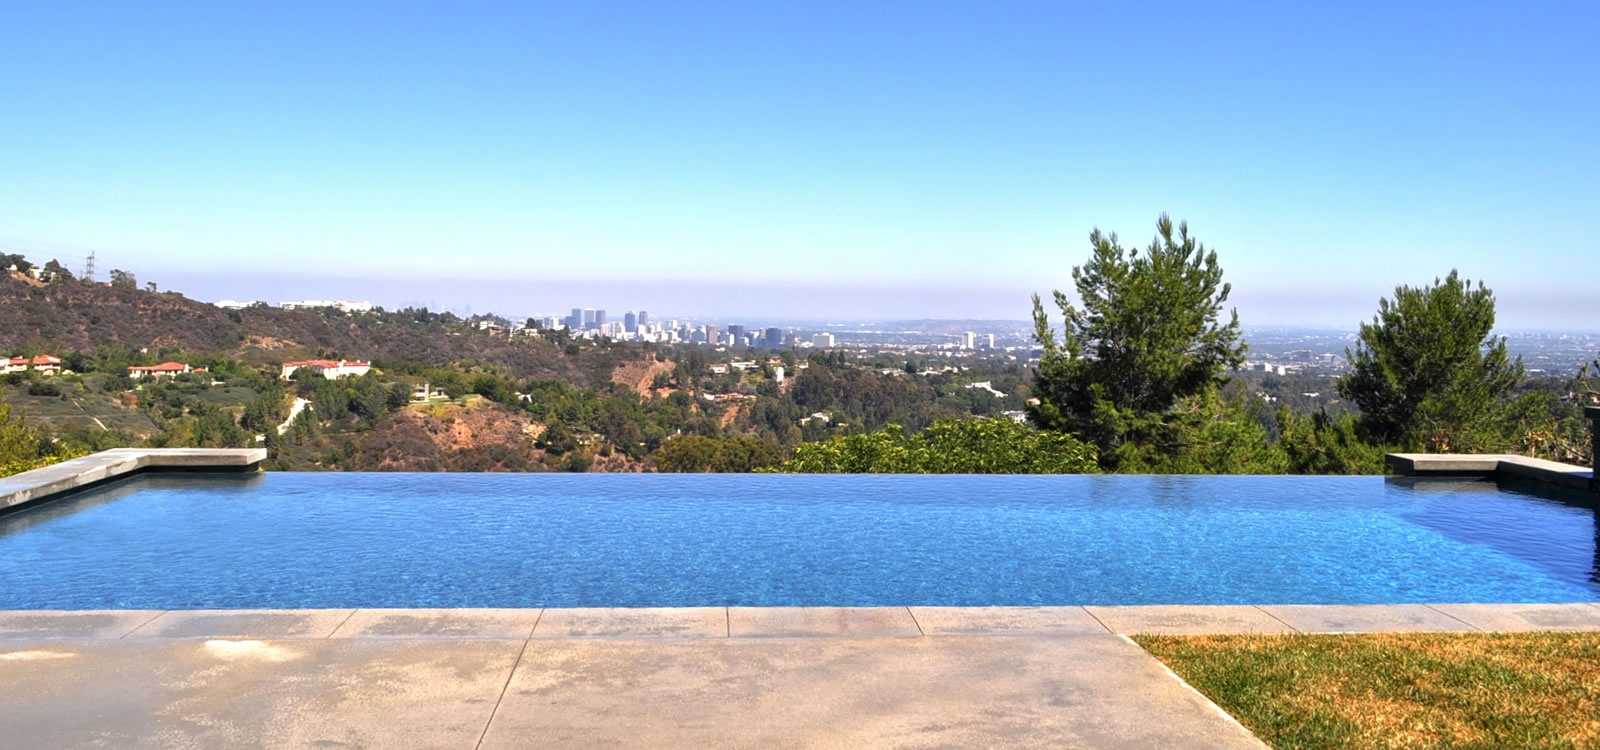 los angeles vanishing edge pool design w elevated spa